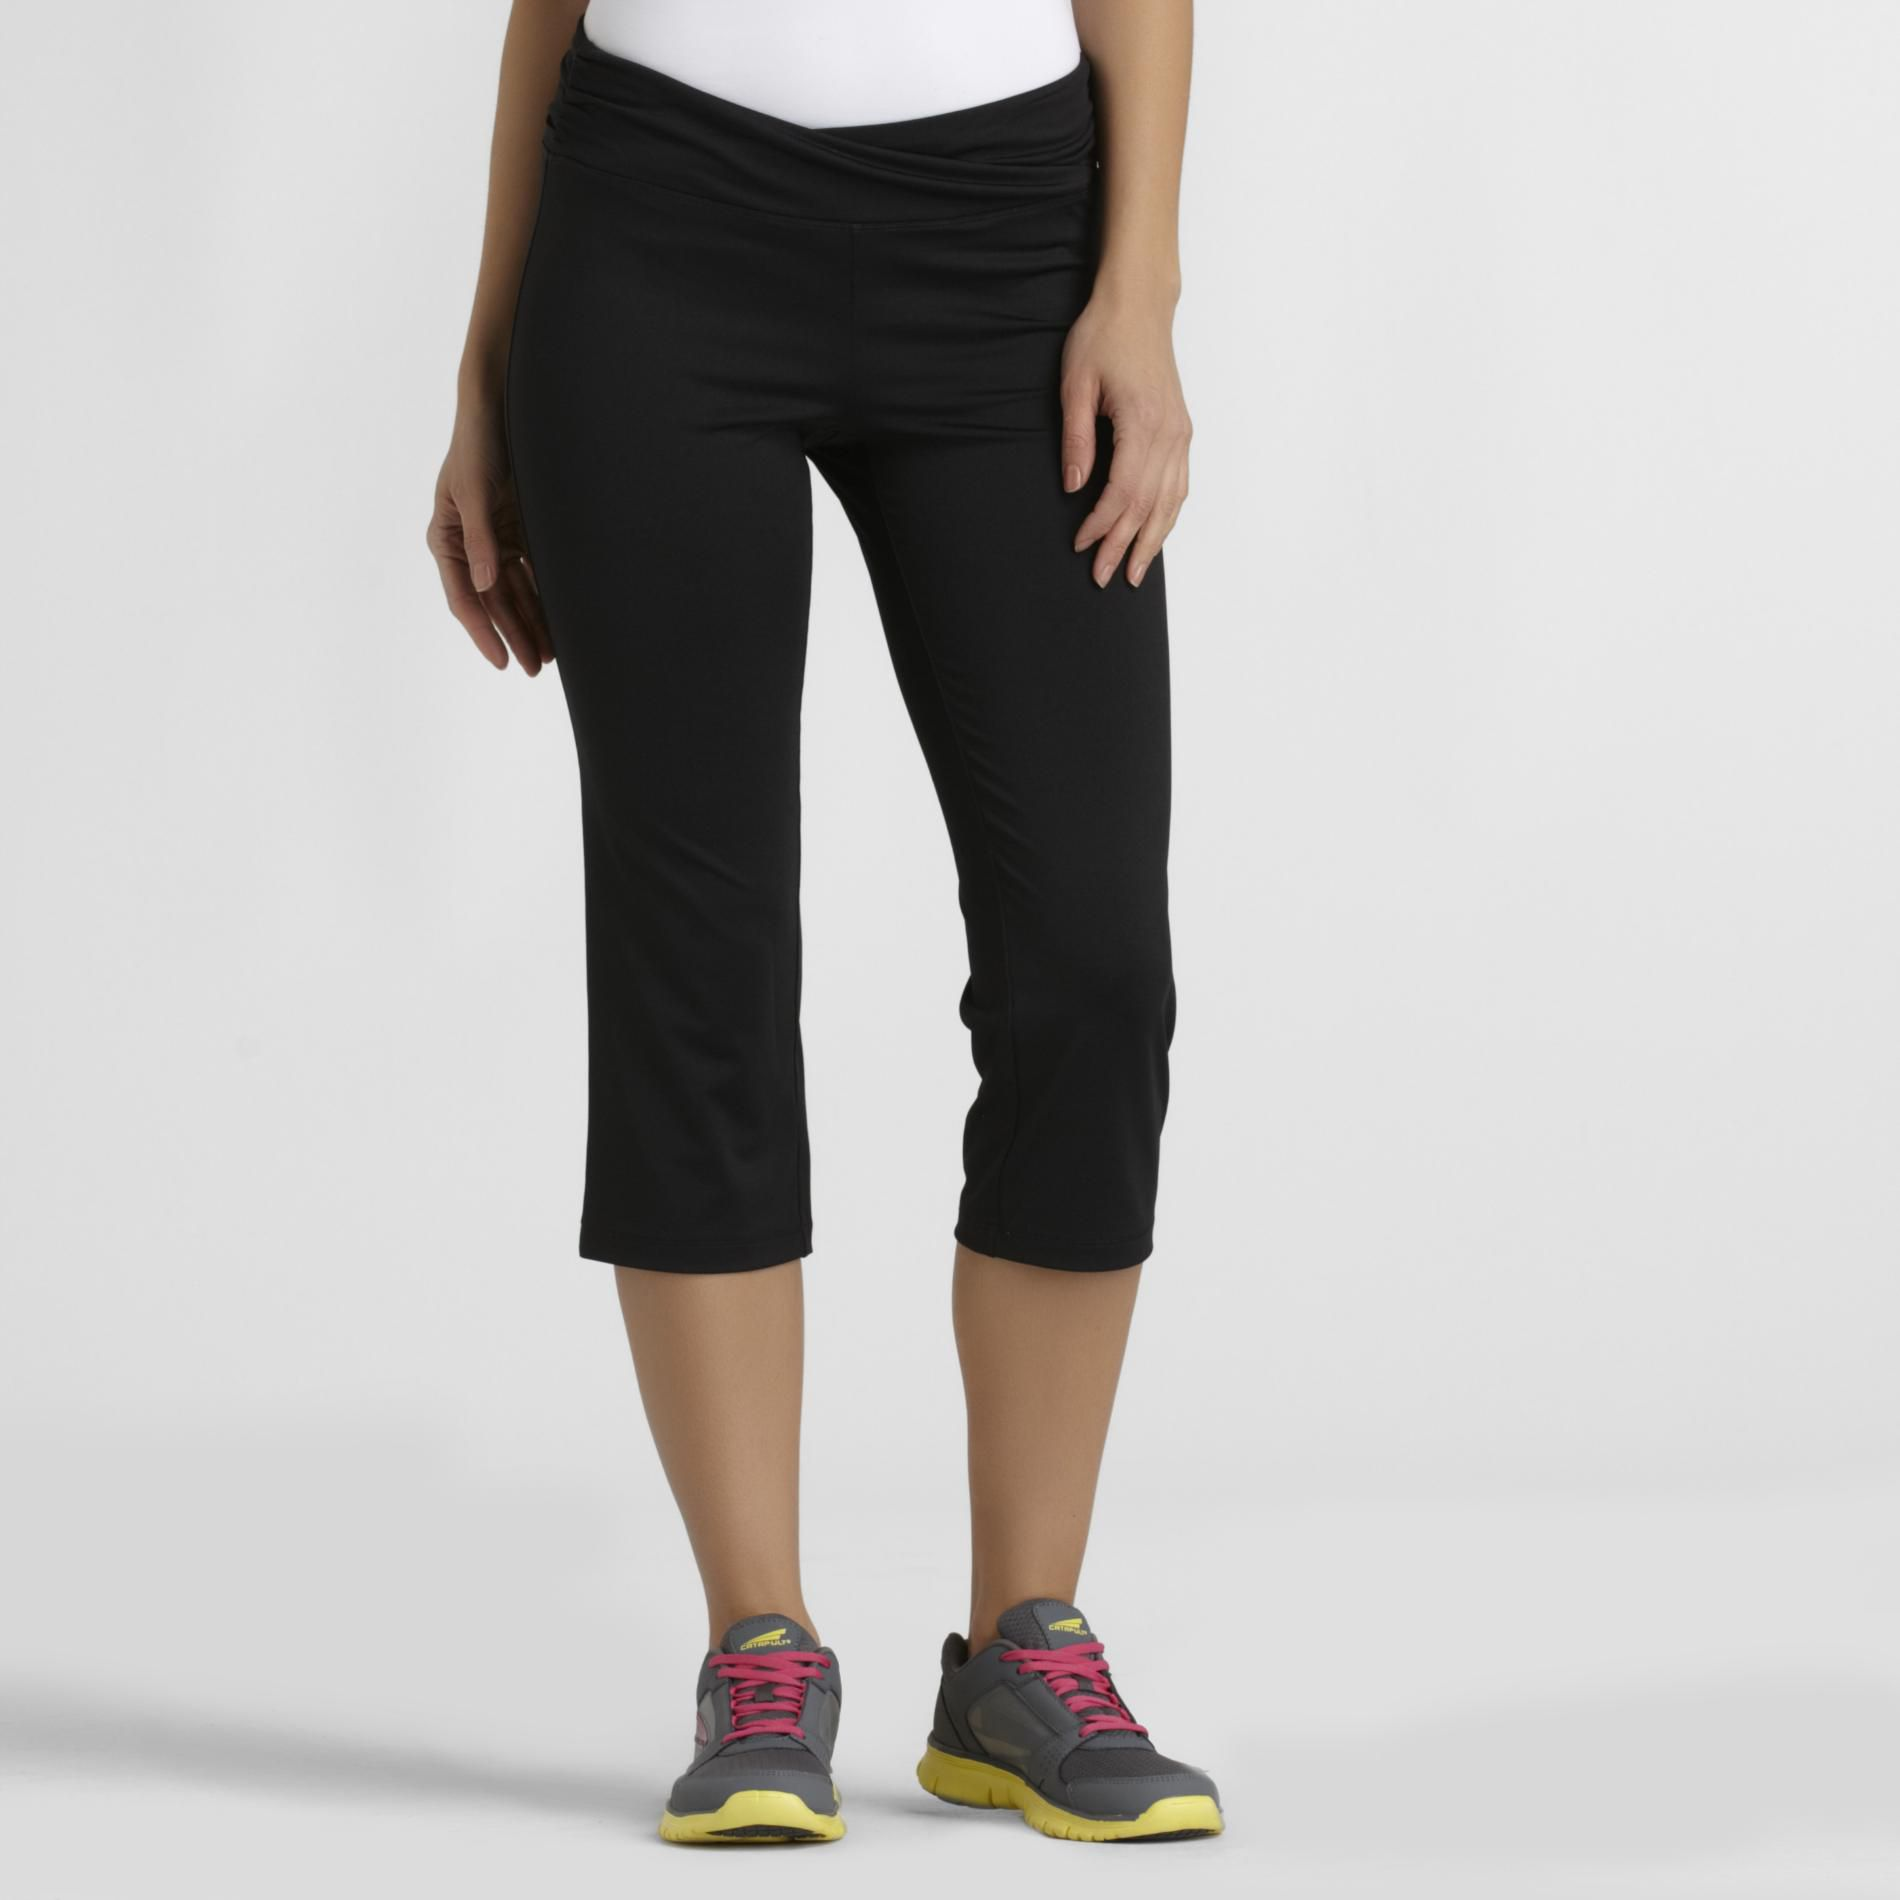 Sofia by Sofia Vergara Women's Yoga Capris at Kmart.com